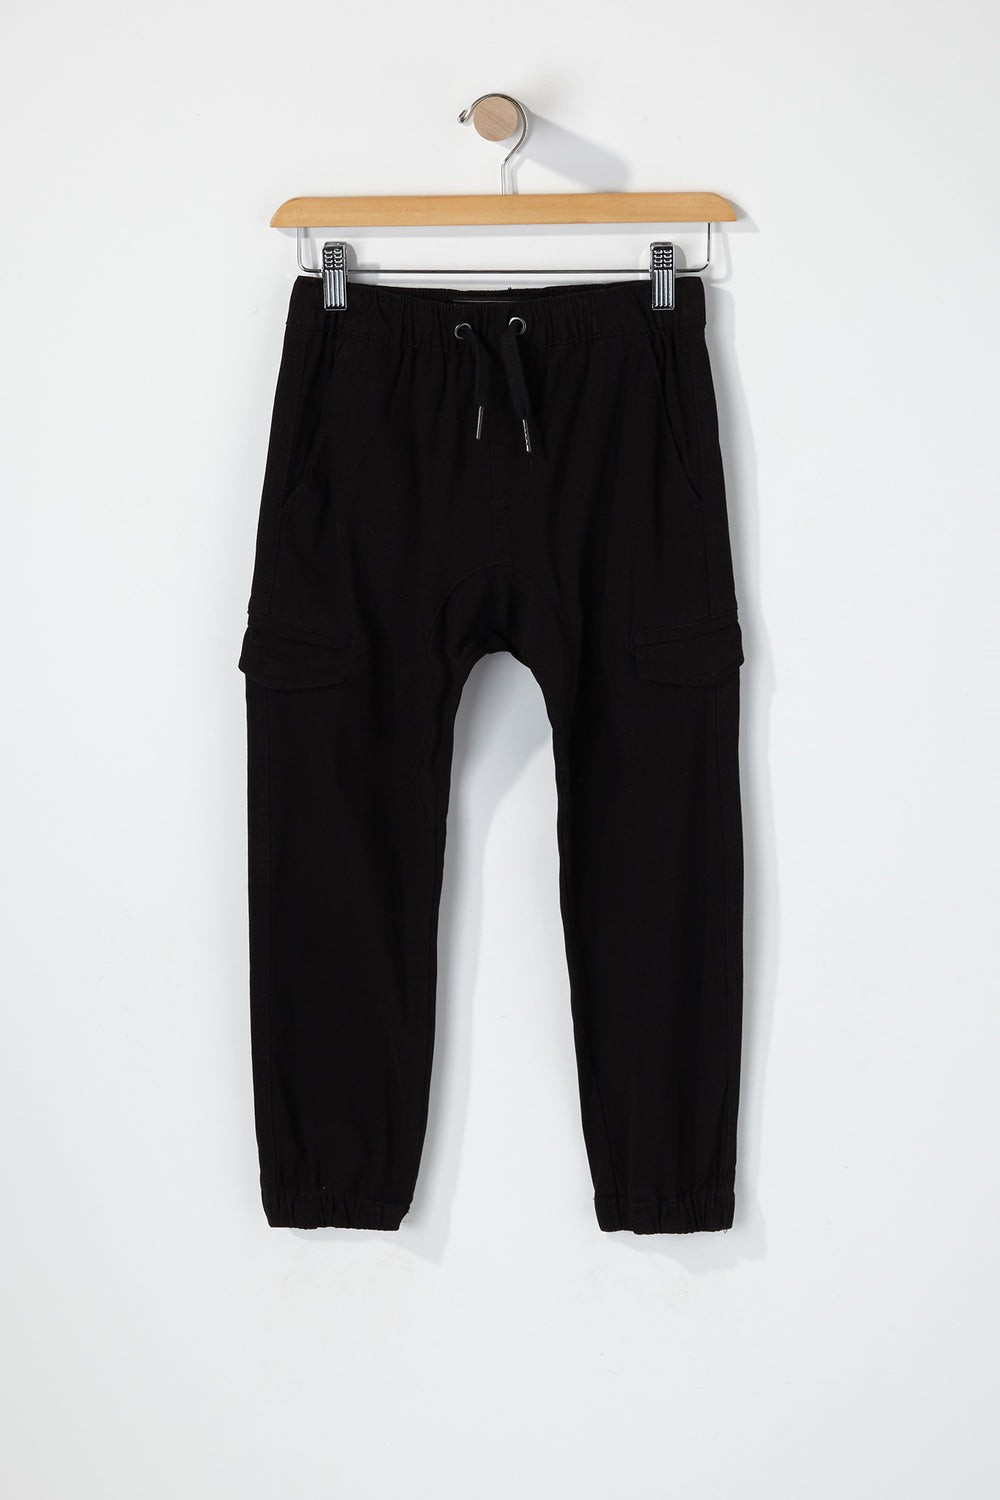 West49 Boys Cargo Jogger Black